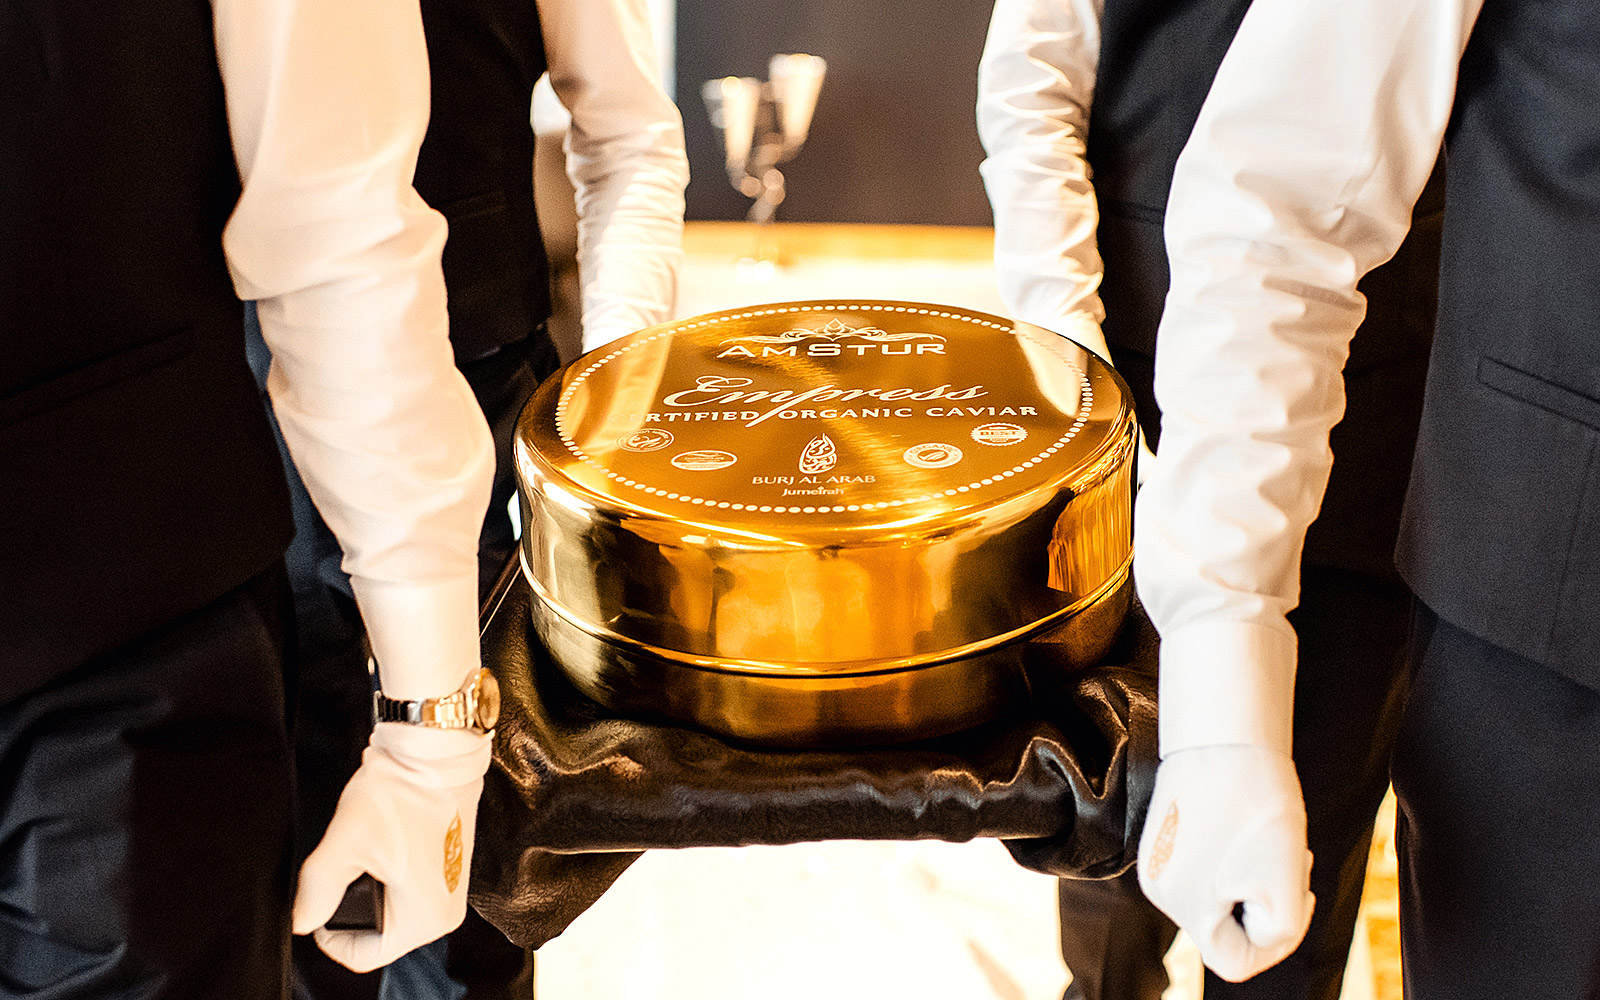 World's Largest Tin of Caviar Premiered at the World's Most Luxurious Hotel